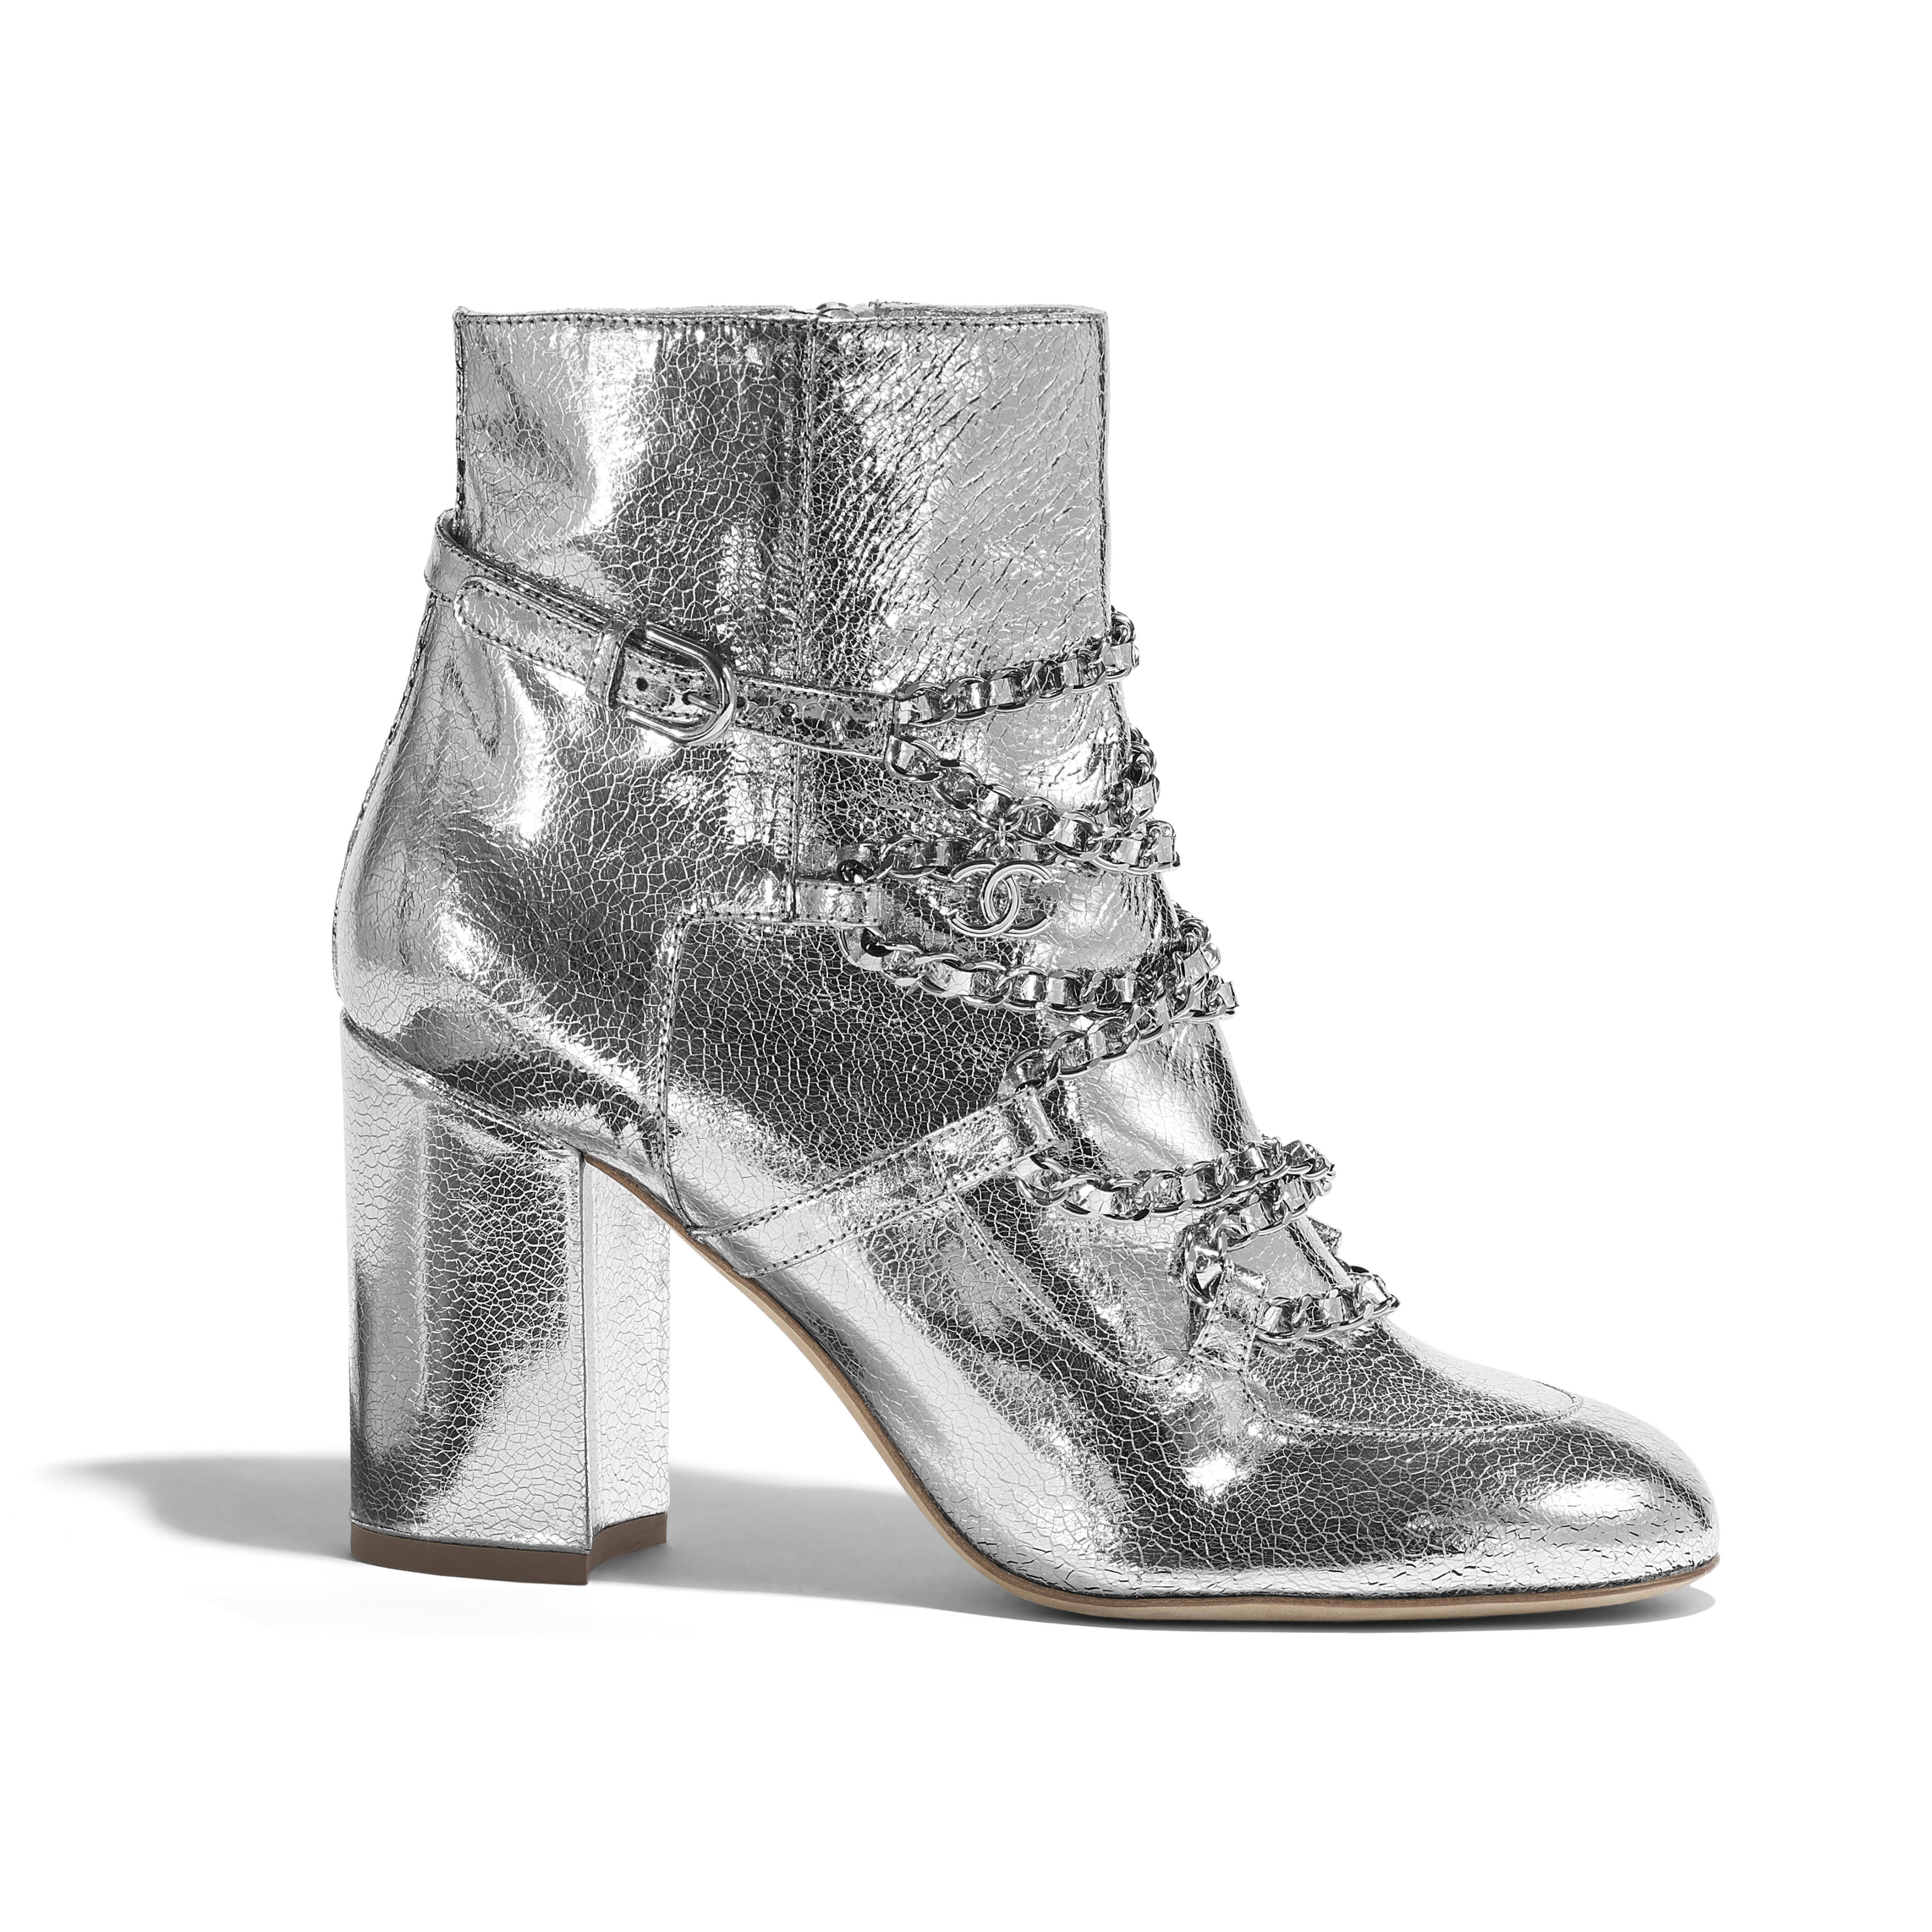 Short Boots - Silver - Laminated Goatskin - Default view - see full sized version